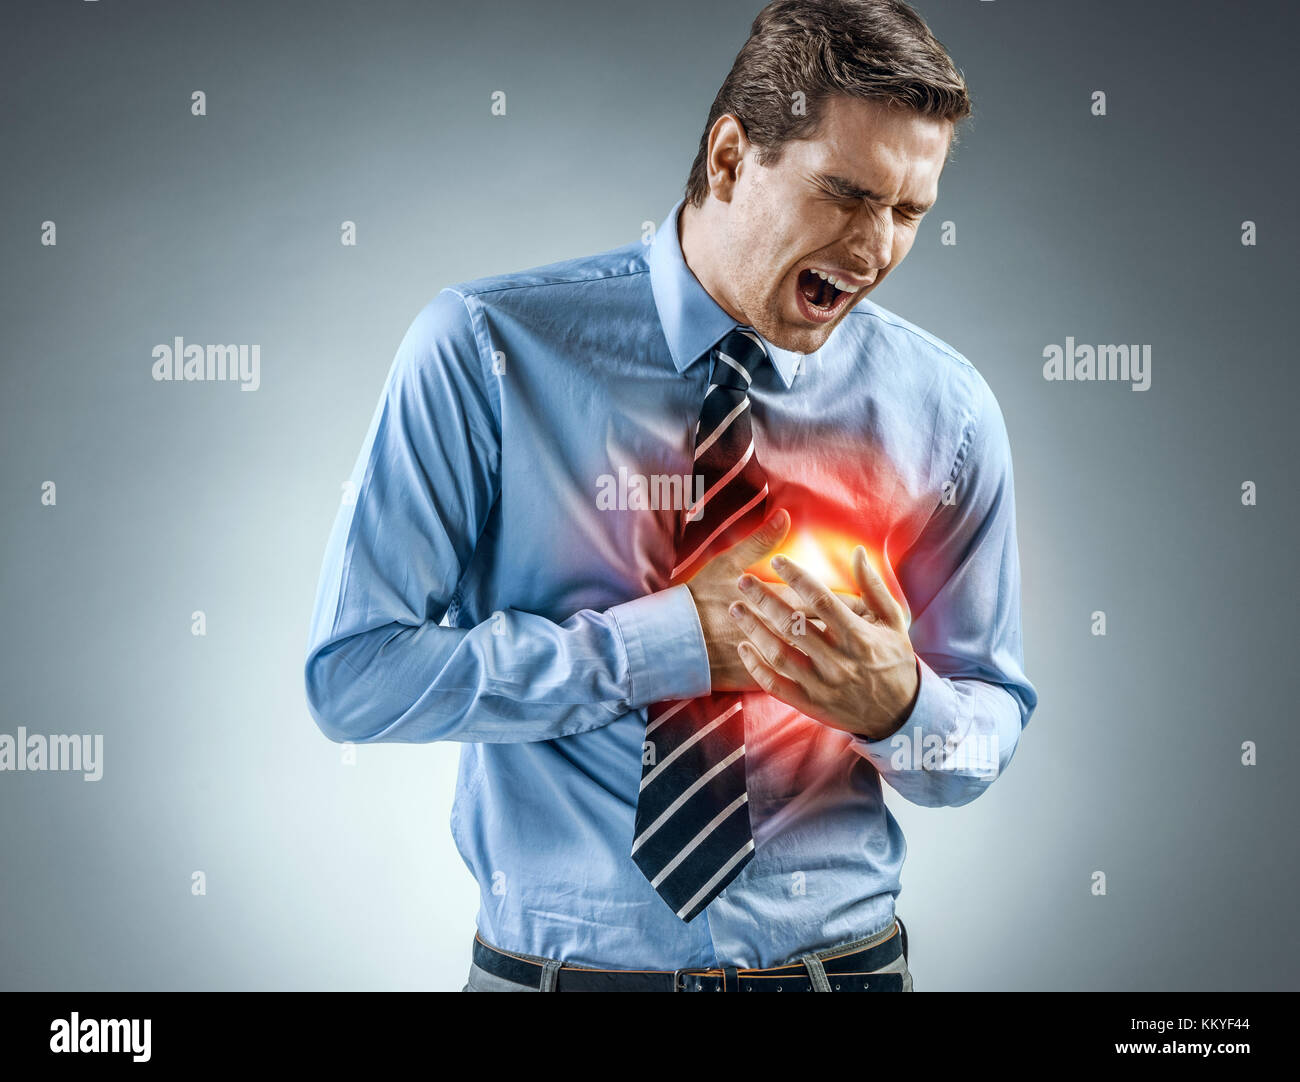 Office manager holding hands on painful chest. Medical concept. Heart attack. - Stock Image